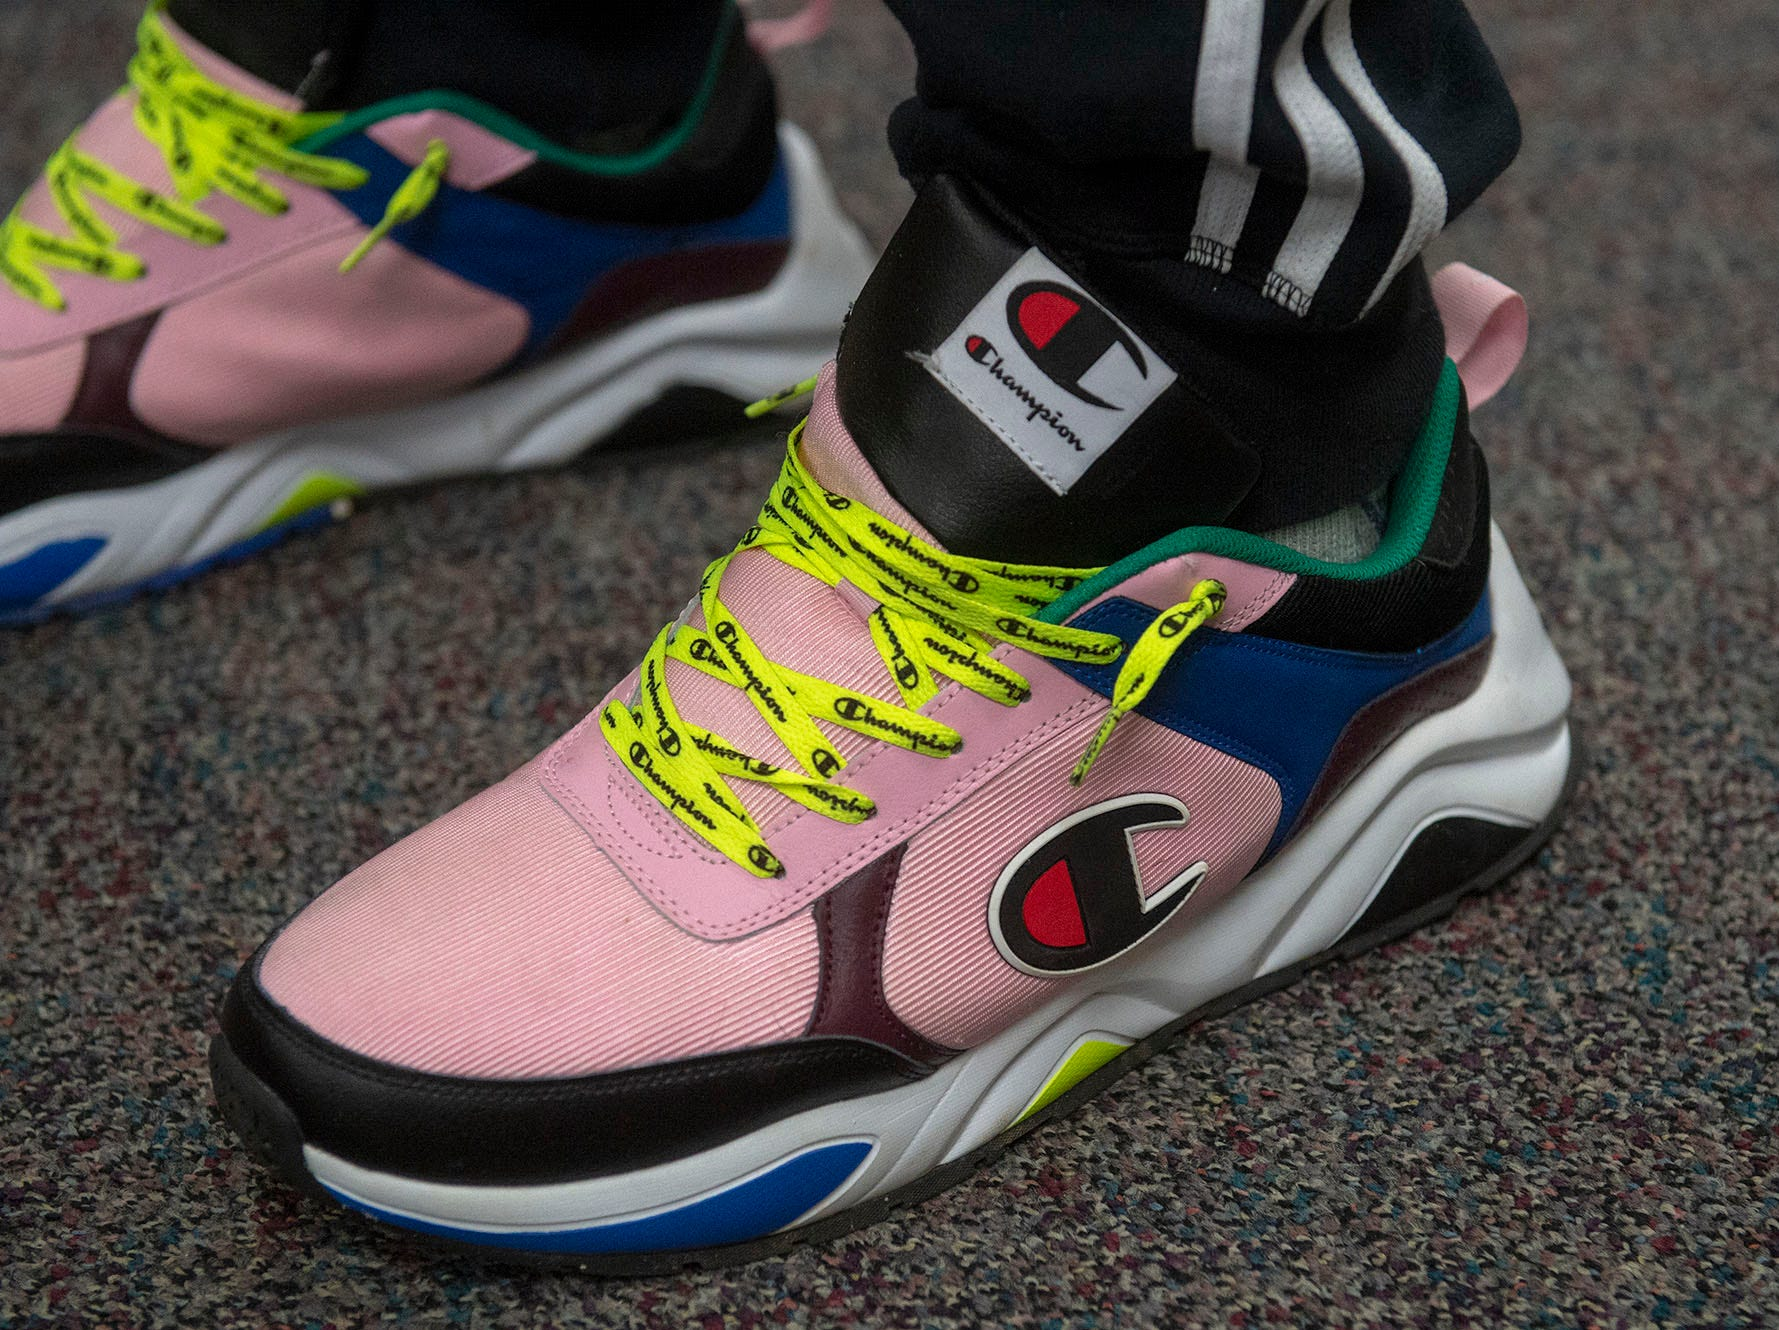 West York junior thrower Jacob Snyder had the most colorful sneakers at GameTimePA's YAIAA Spring Media Day on Sunday, March 10, 2019.